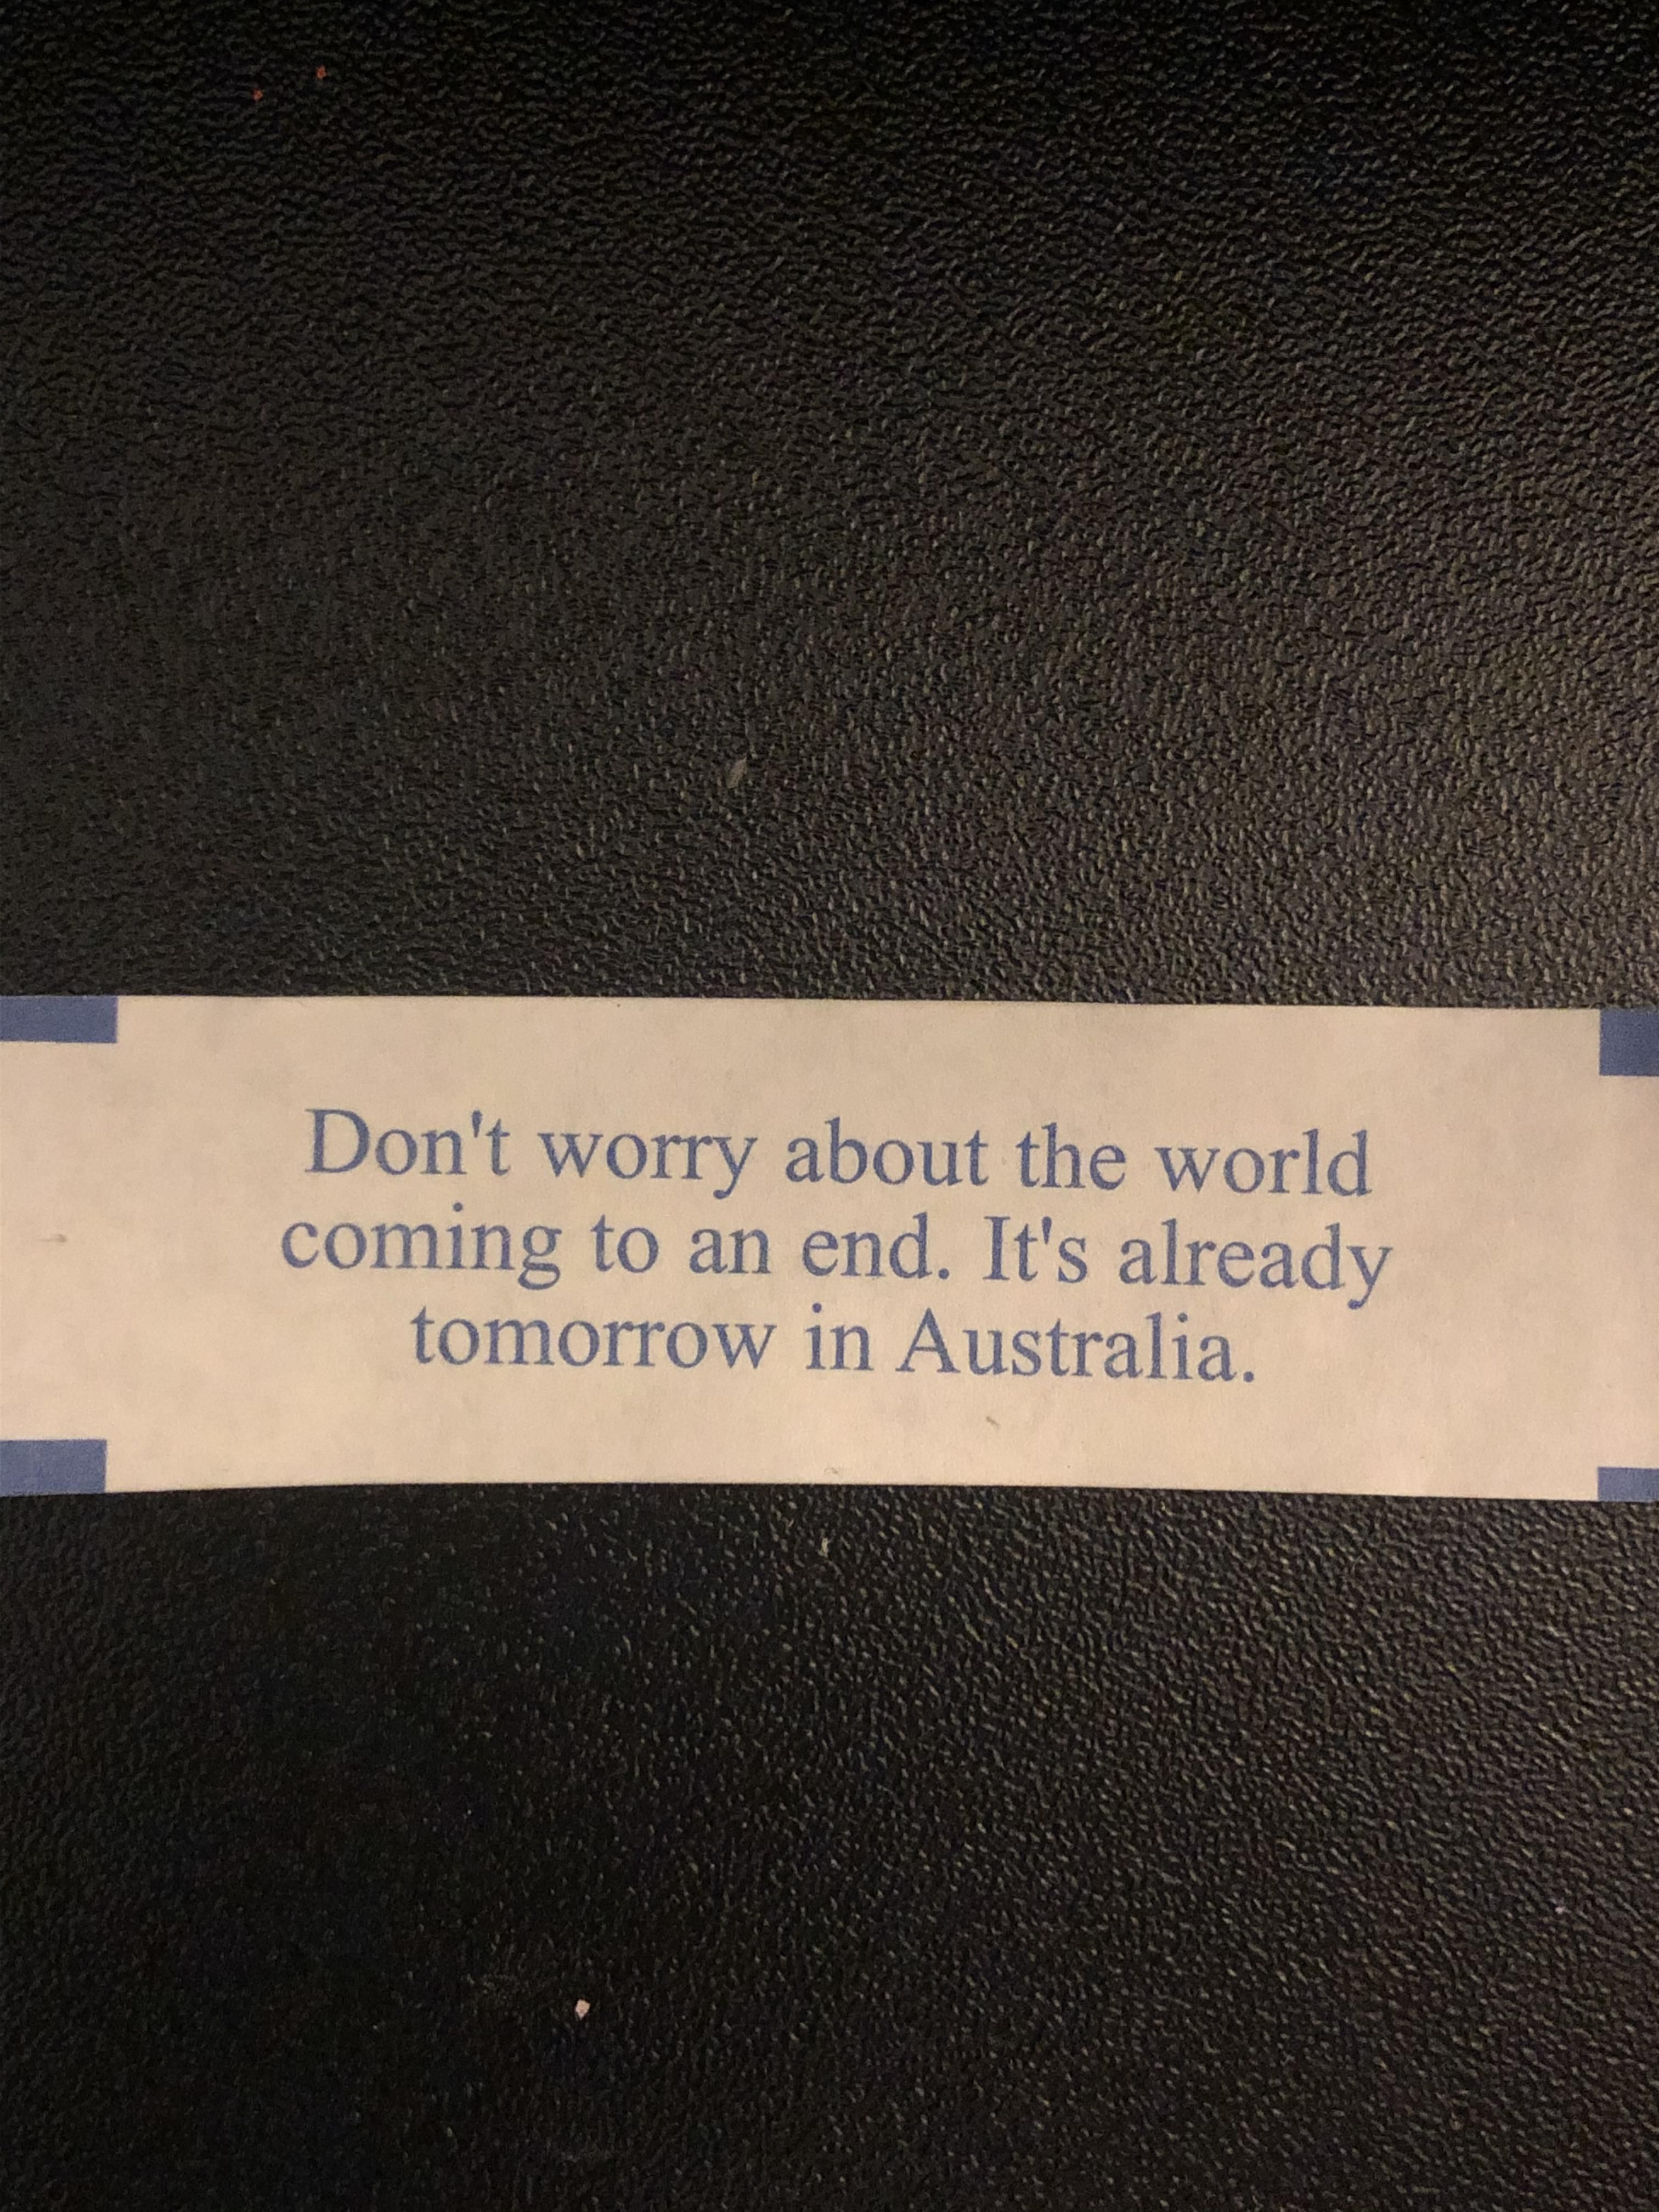 Is it just me or are fortune cookies getting more and more specific by the day